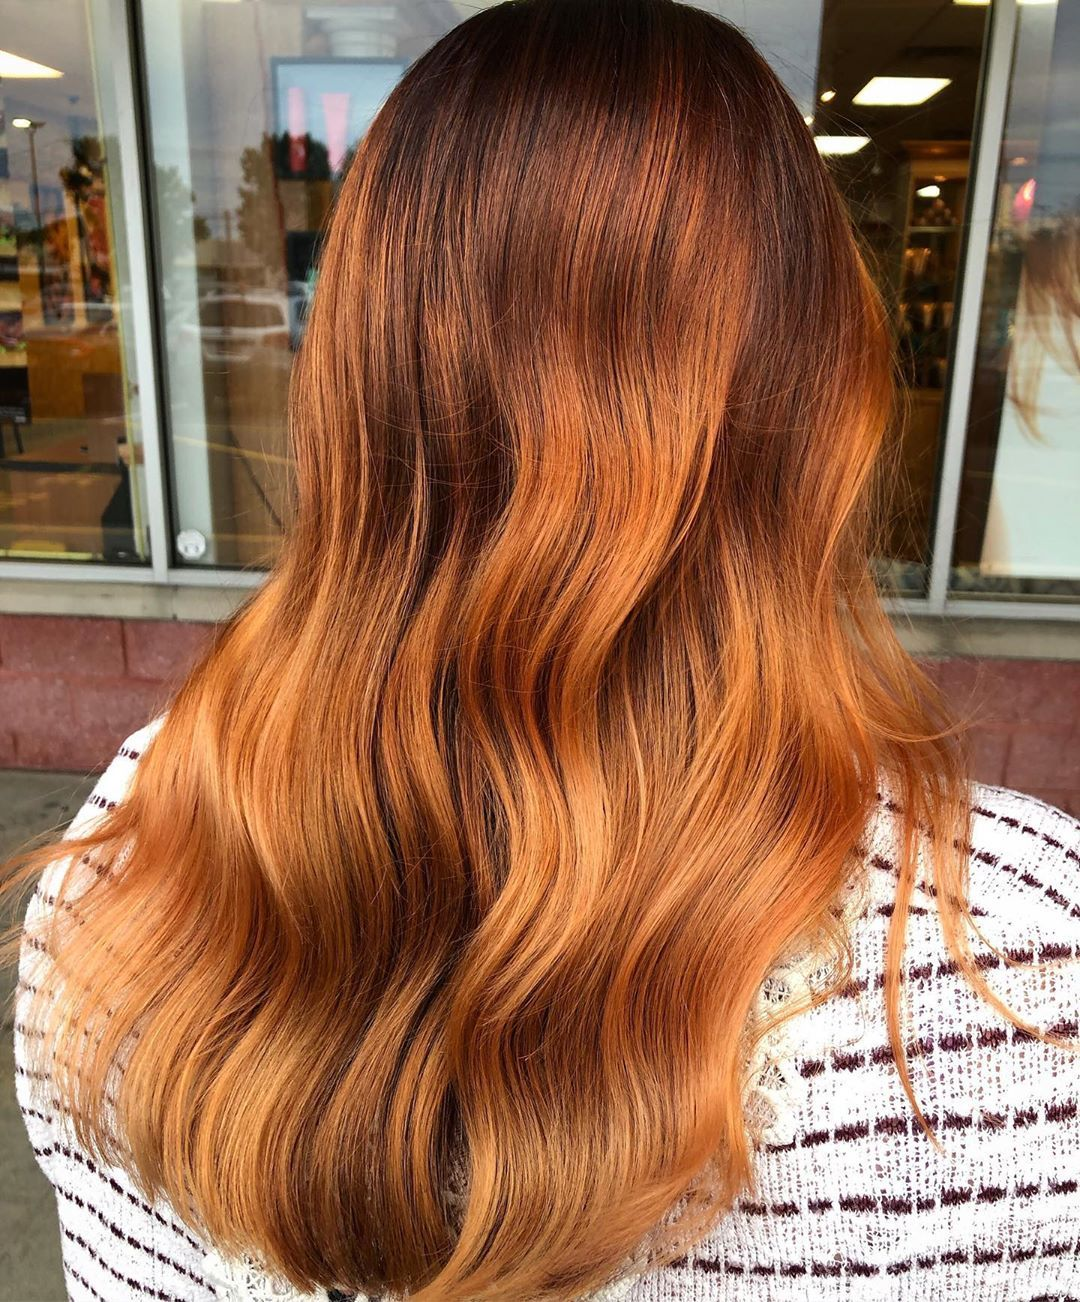 Woman with golden pumpkin spice hair colour